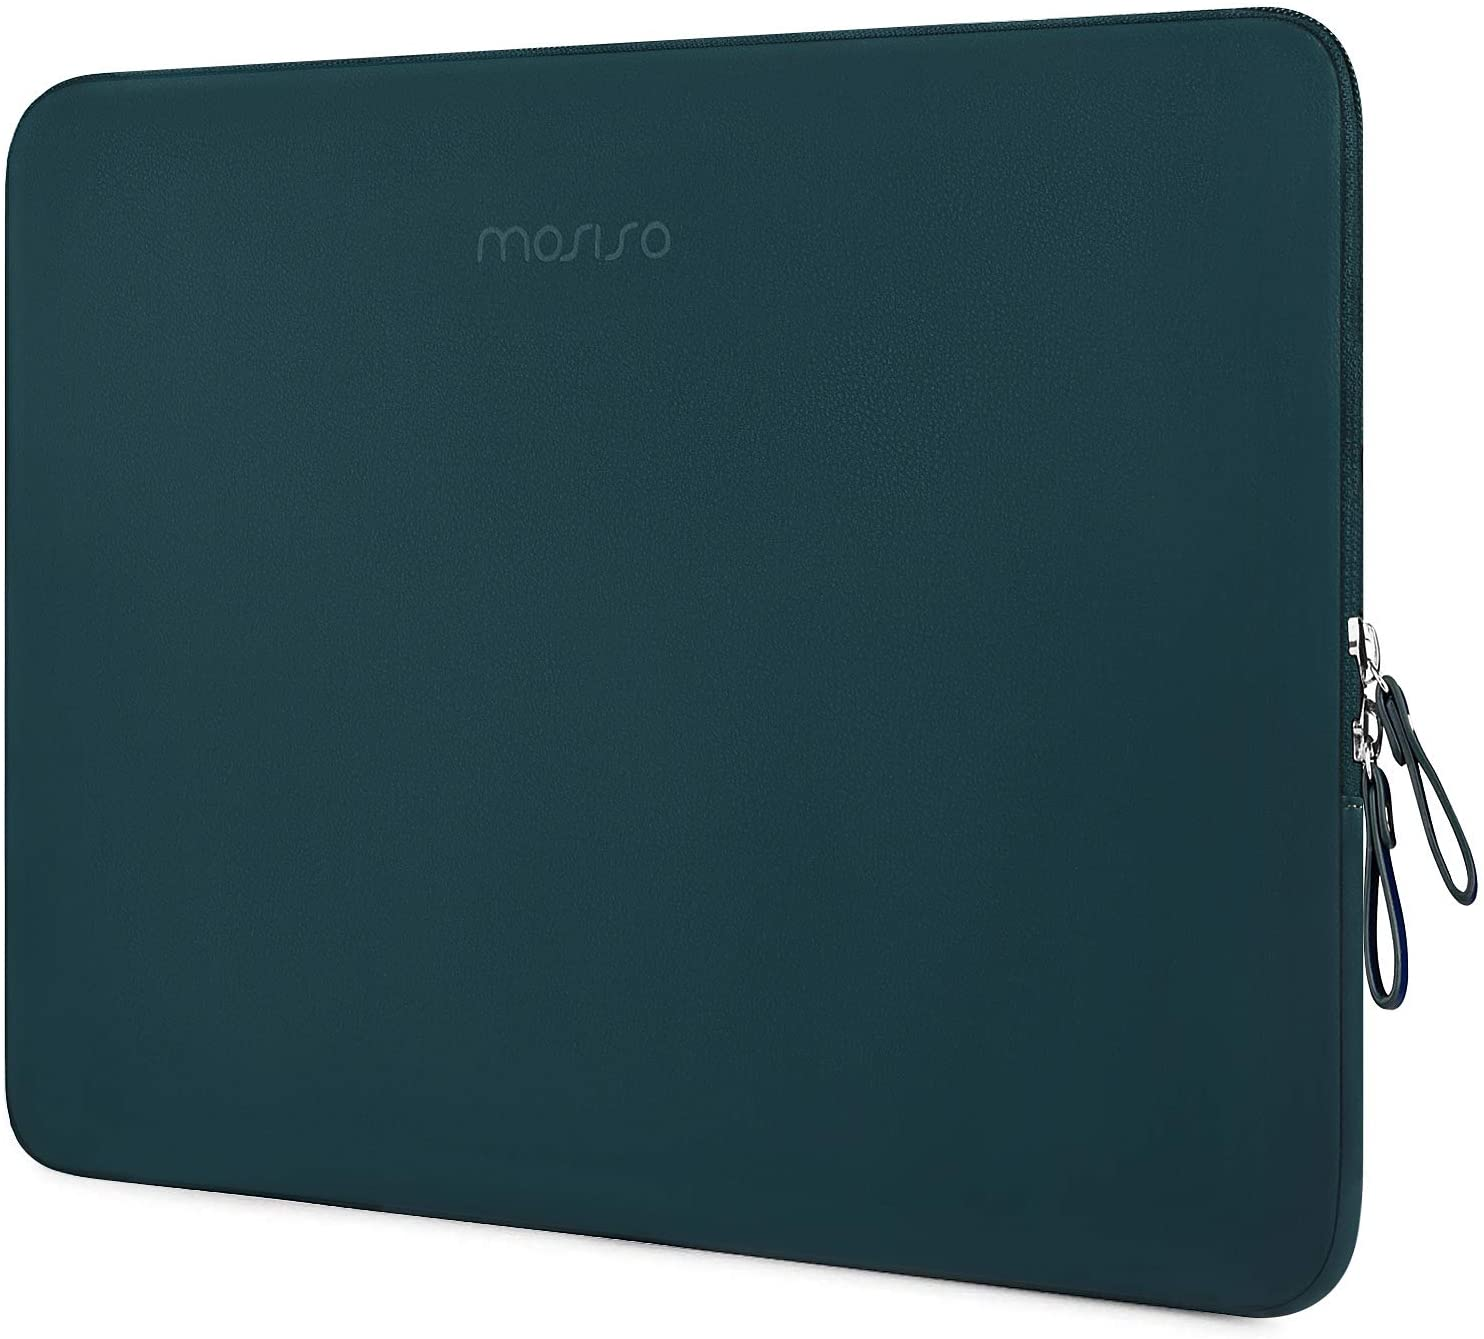 MOSISO Laptop Sleeve Compatible with 13-13.3 Inch MacBook Air/MacBook Pro Retina/2019 2018 Surface Laptop 3/2/Surface Book 2, PU Leather Super Padded Bag Waterproof Protective Case, Deep Teal